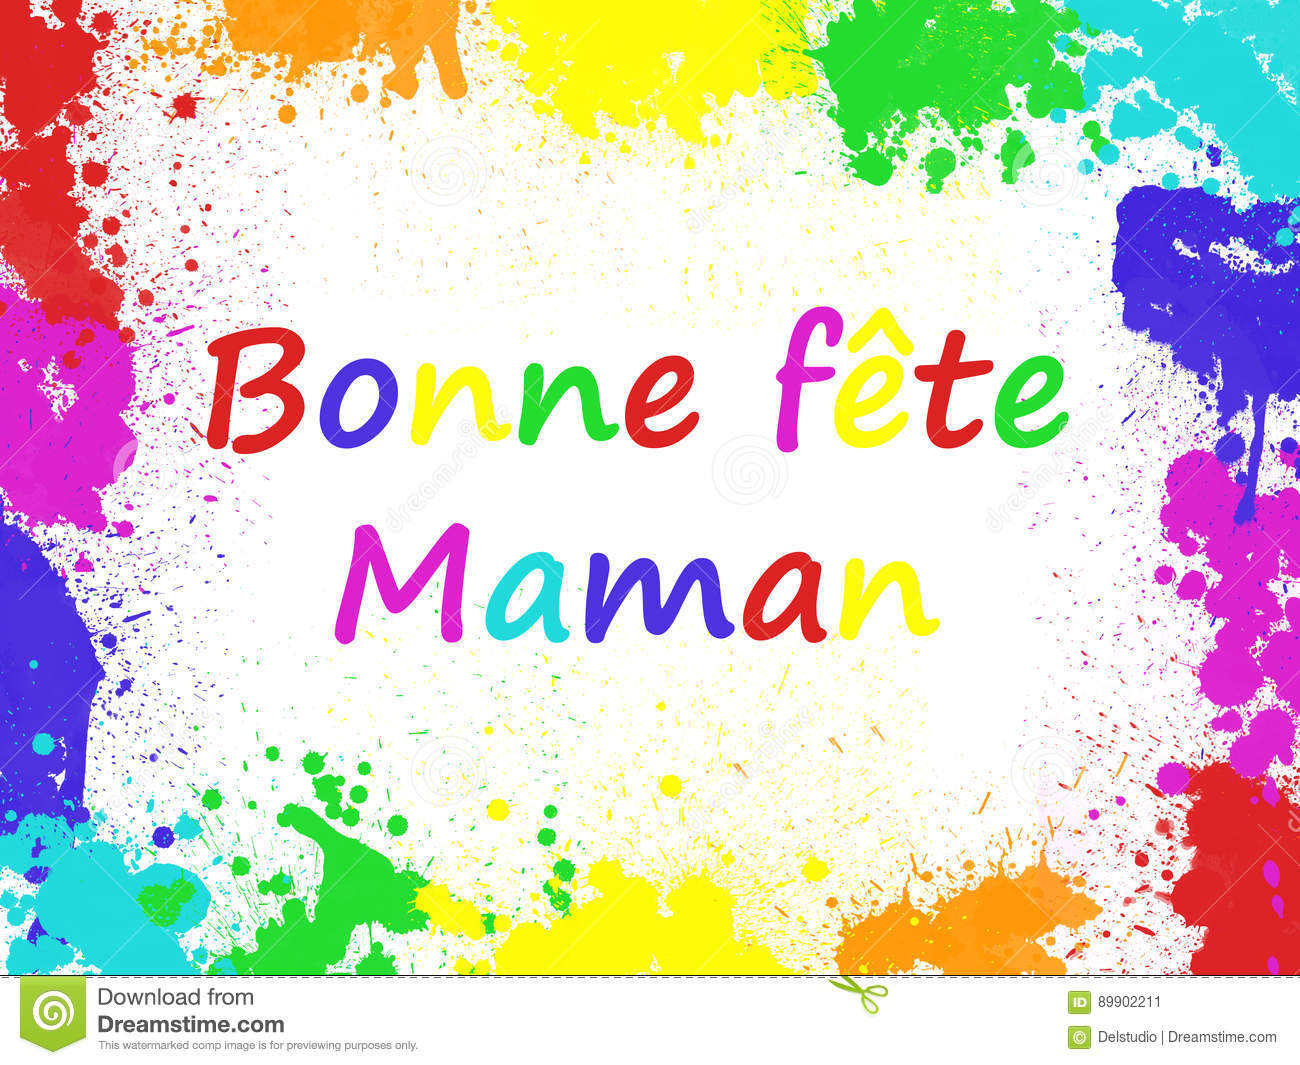 bonne fete maman meaning happy mothers day in french. Black Bedroom Furniture Sets. Home Design Ideas